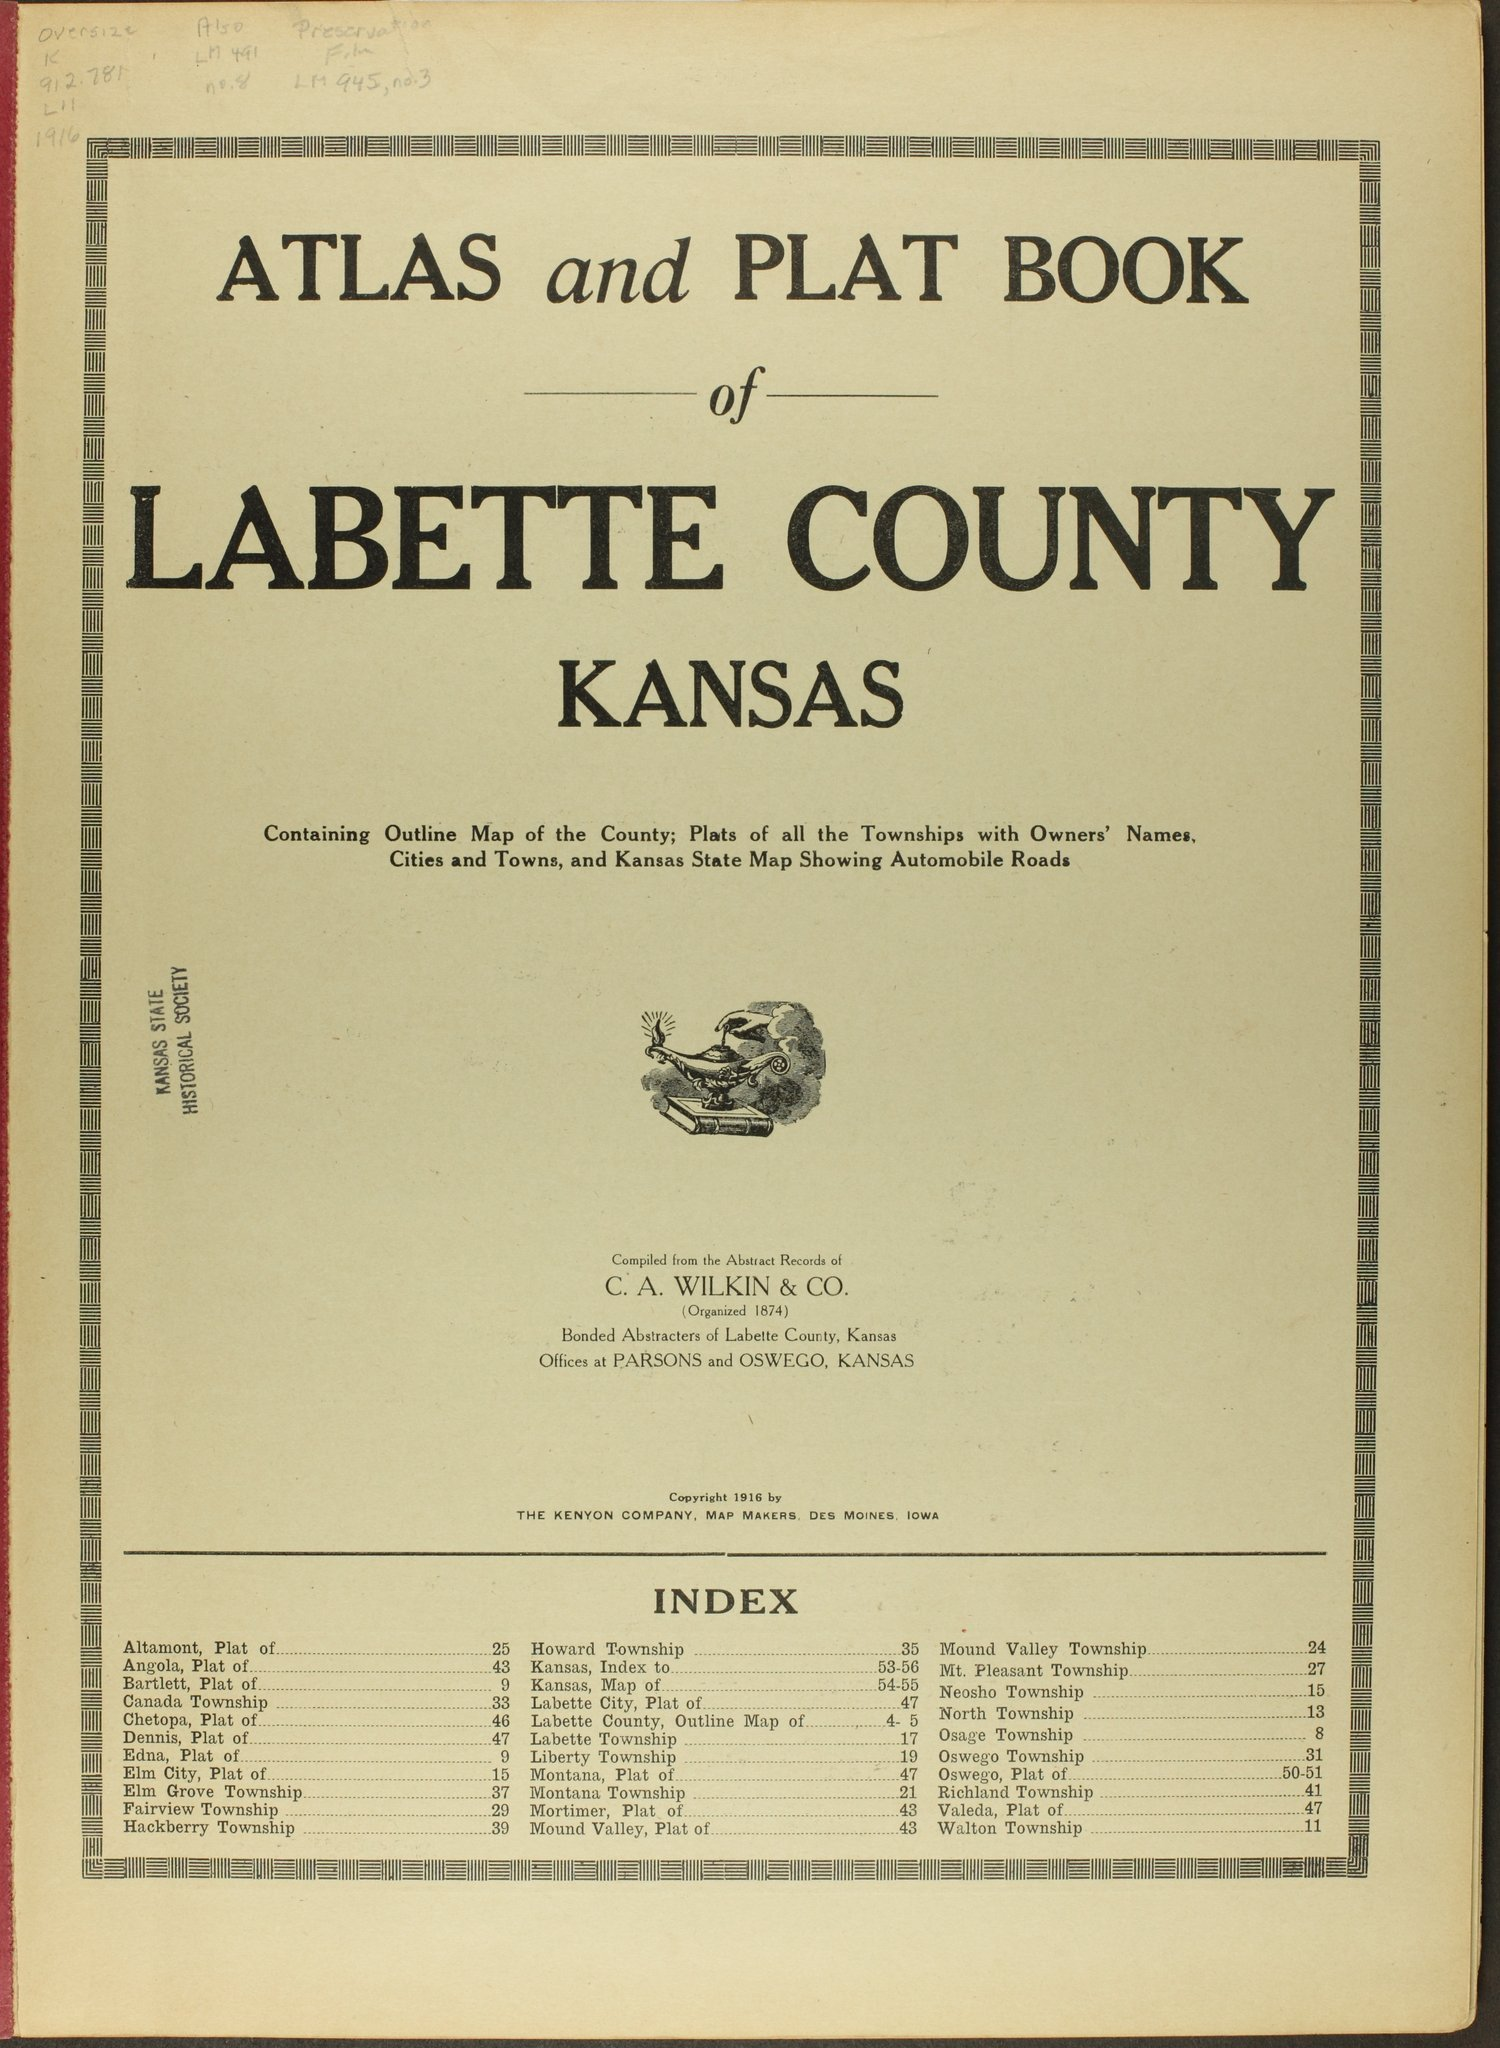 Atlas and plat book of Labette County, Kansas - Title Page